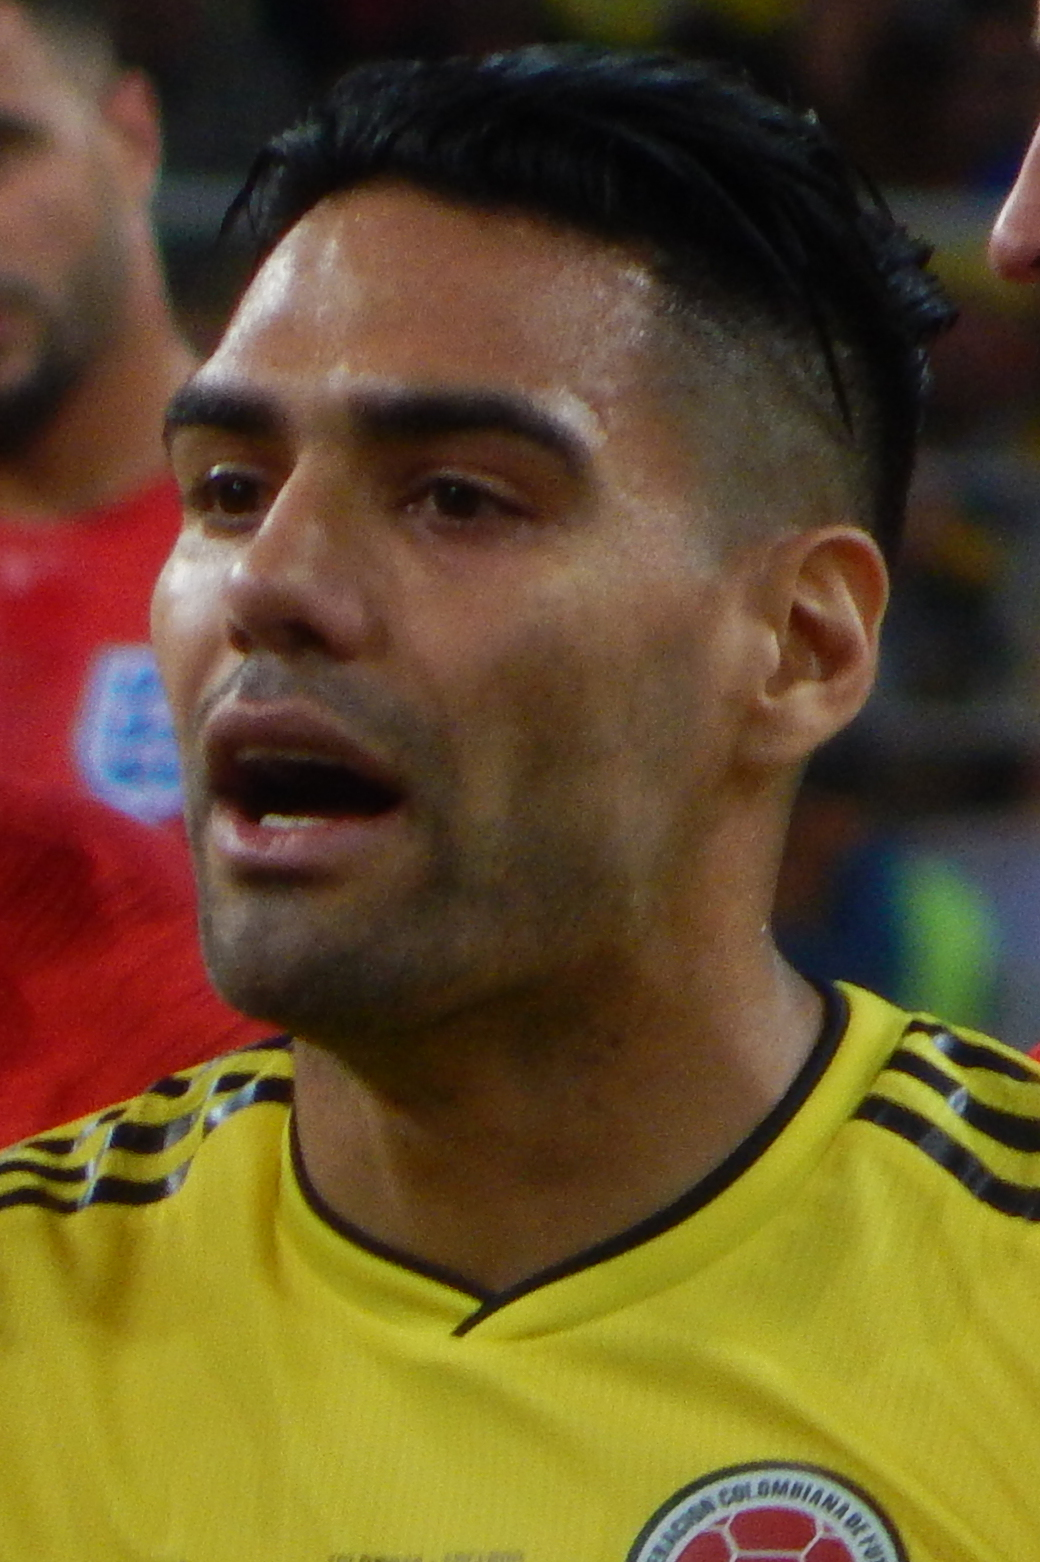 The 32-year old son of father Radamel García and mother Carmenza Zárate Radamel Falcao in 2018 photo. Radamel Falcao earned a 23 million dollar salary - leaving the net worth at 70 million in 2018